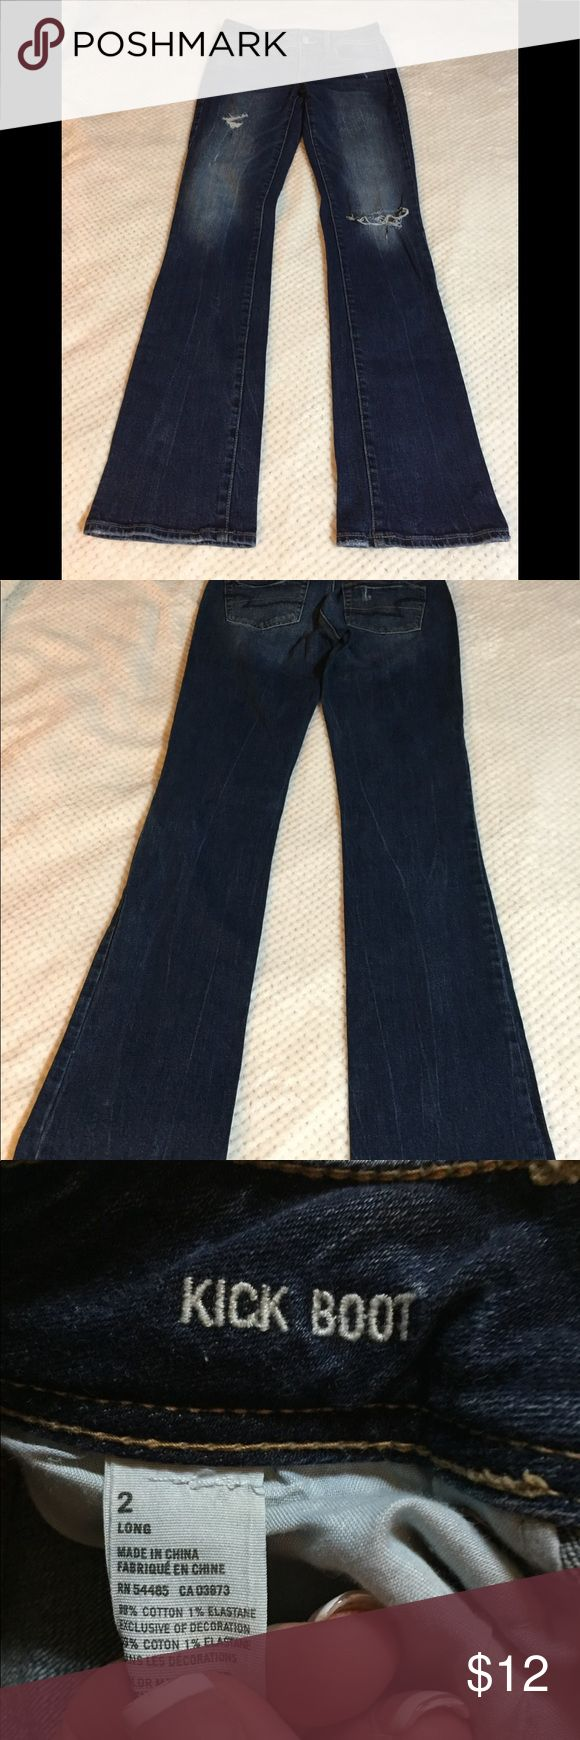 American Eagle Jeans AE distressed kick boot in Sz 2 Long.  I purchased these online without realizing they were a long so I have no use for these.  Must go!! American Eagle Outfitters Jeans Boot Cut